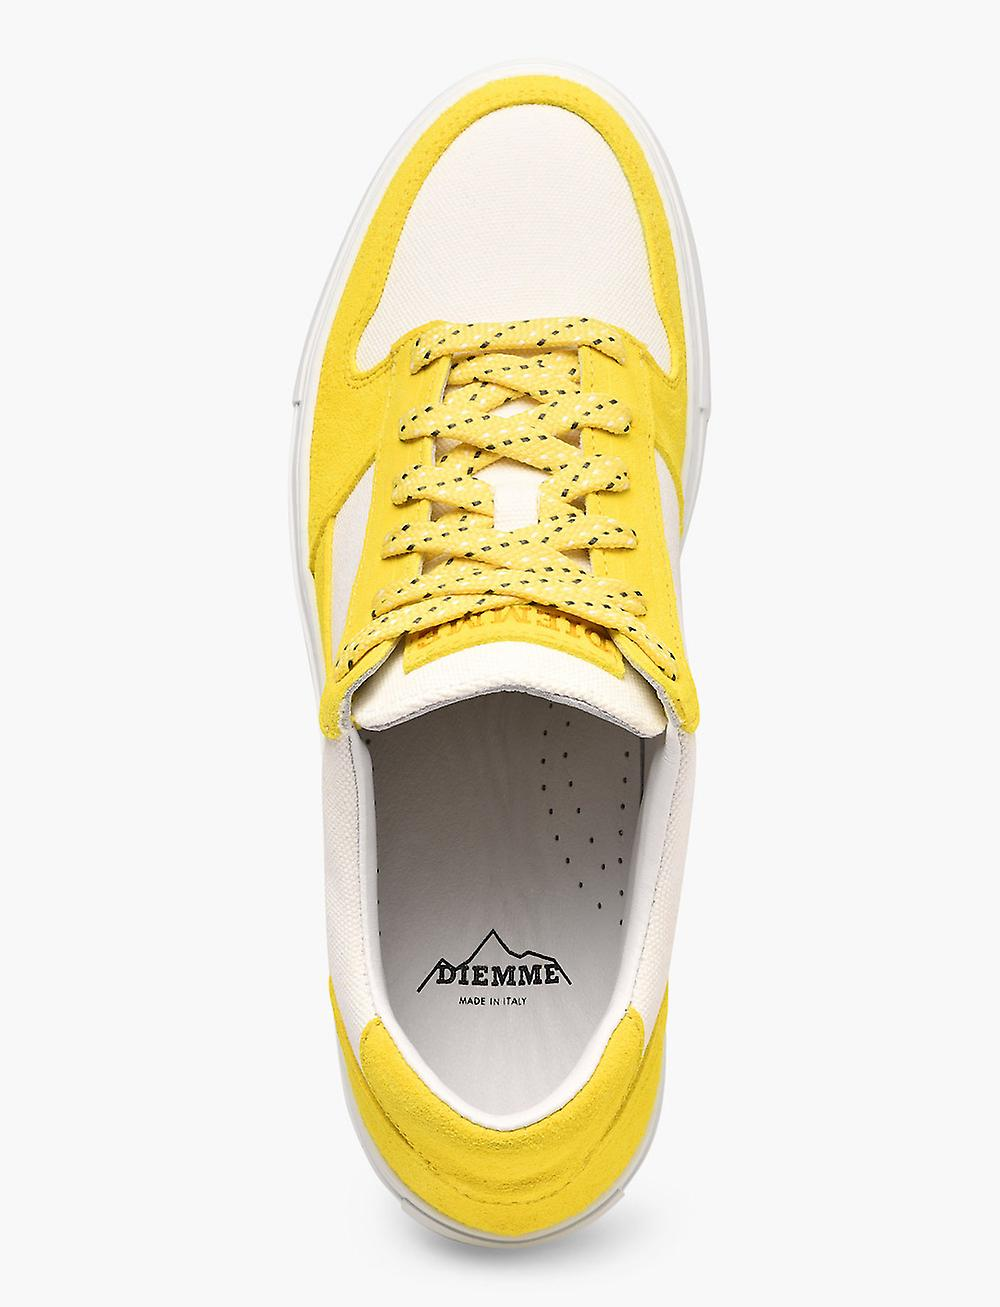 Brenta Giallo Suede Basse Sneakers ZwtCp8